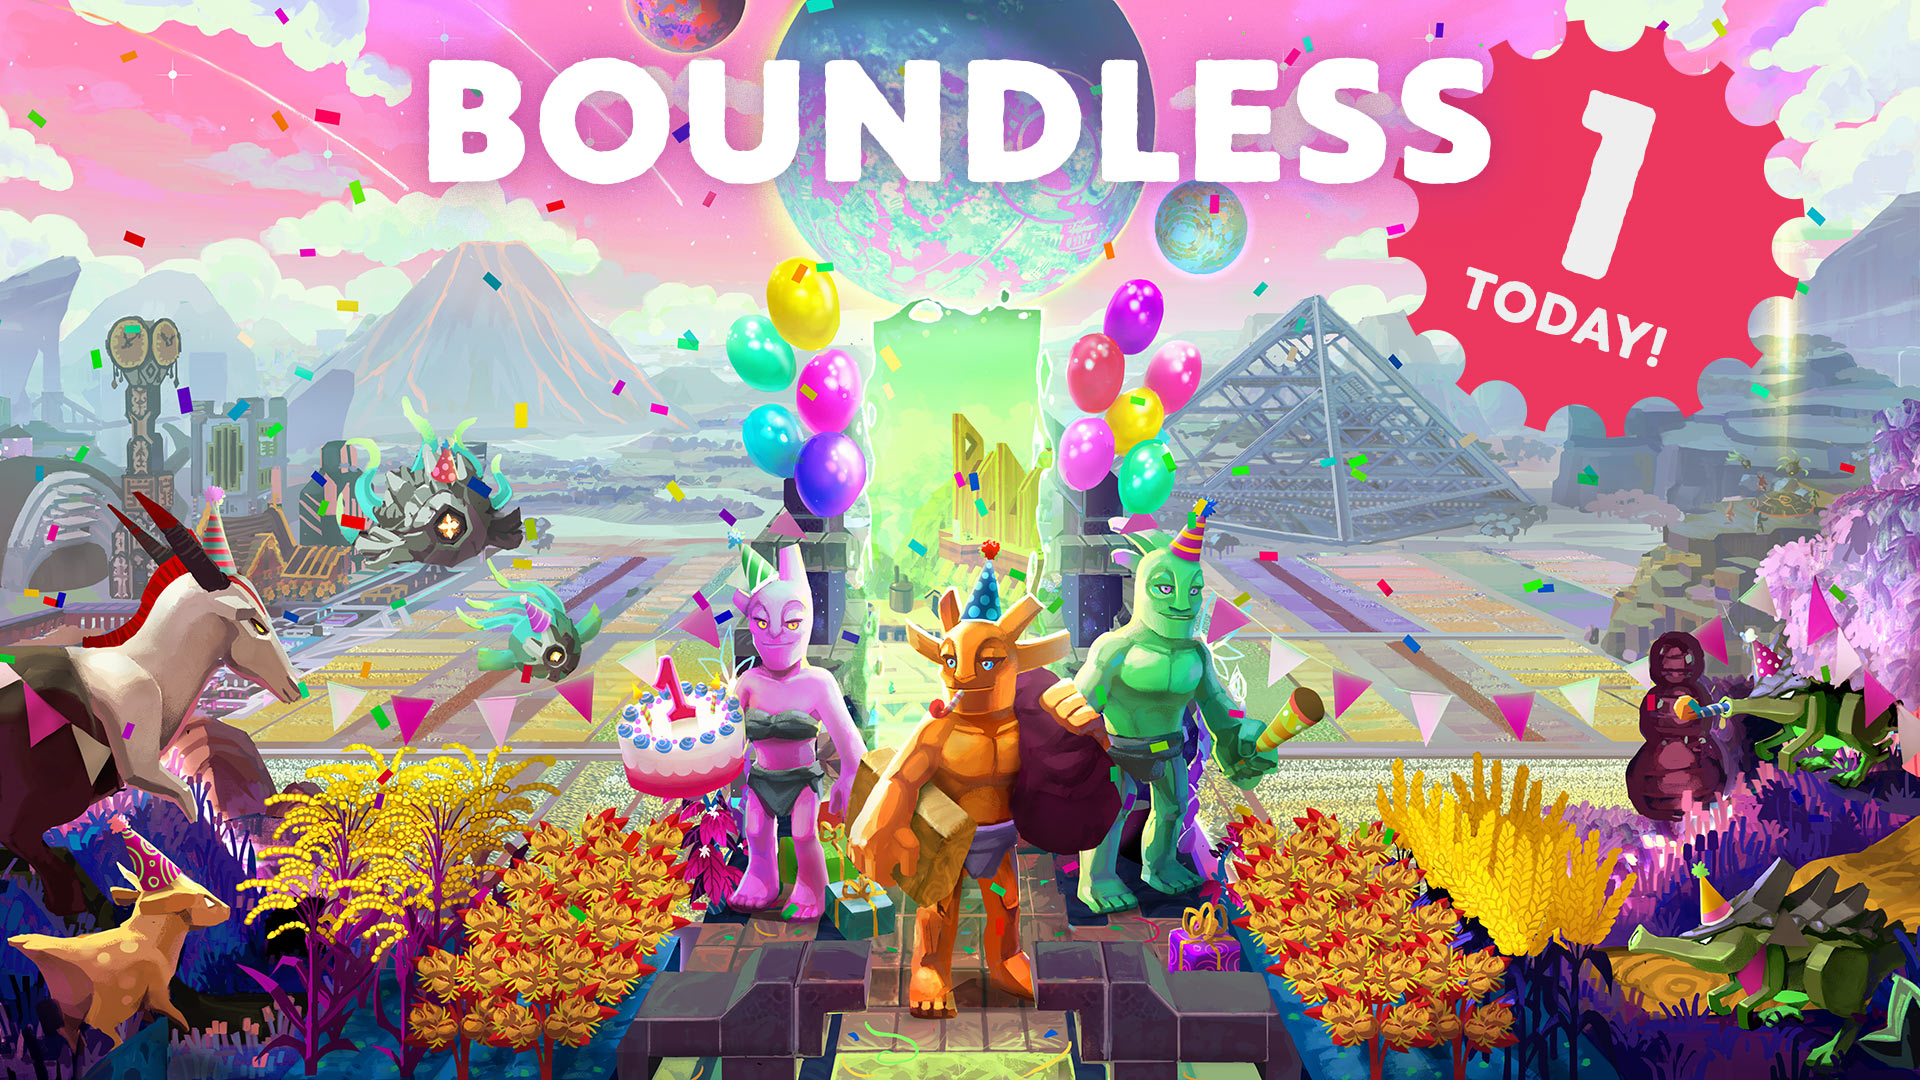 One Whole Year Of Boundless Thank You To Our Amazing Community